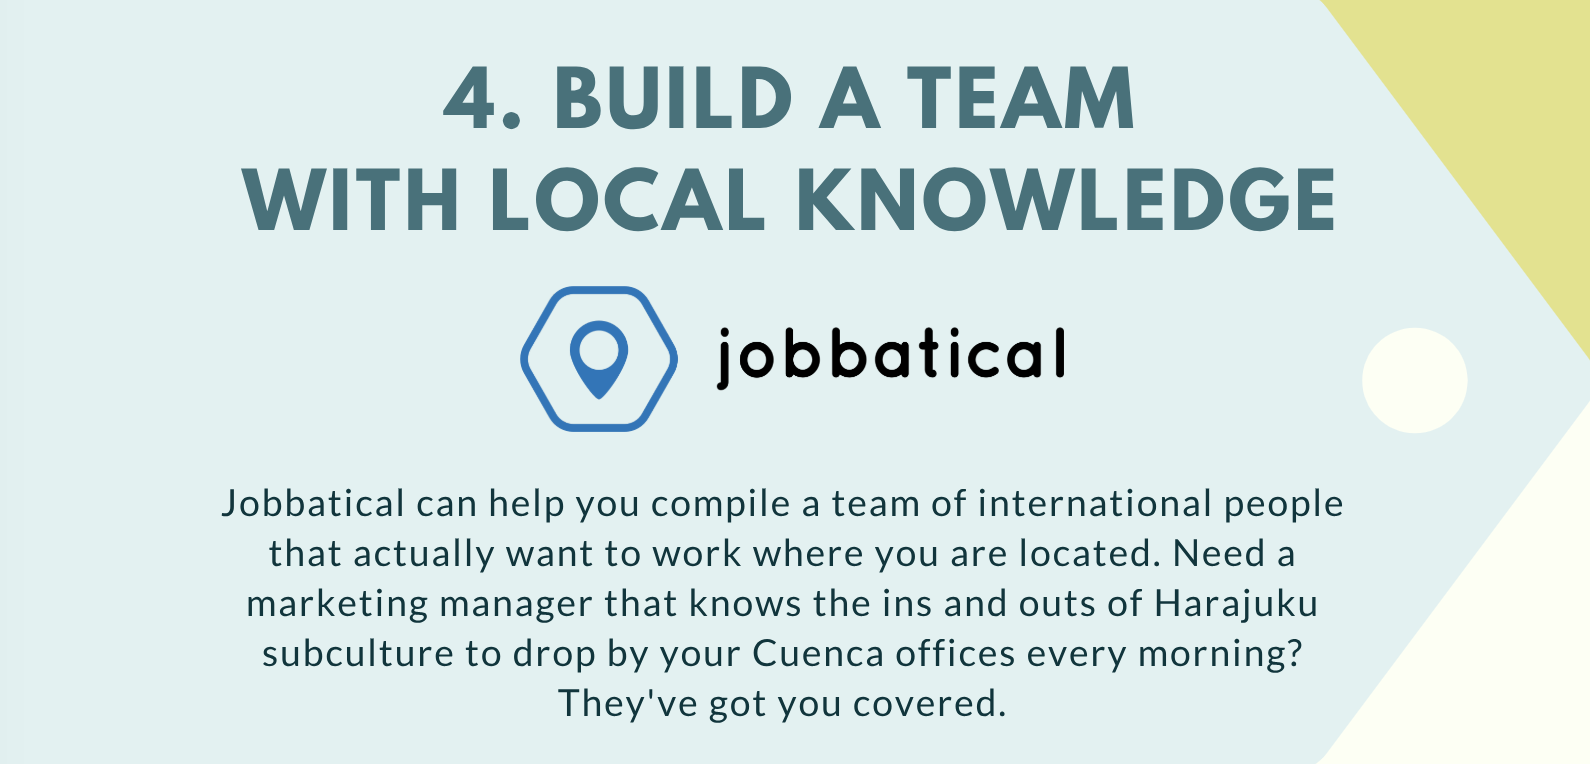 Build a team with local knowledge